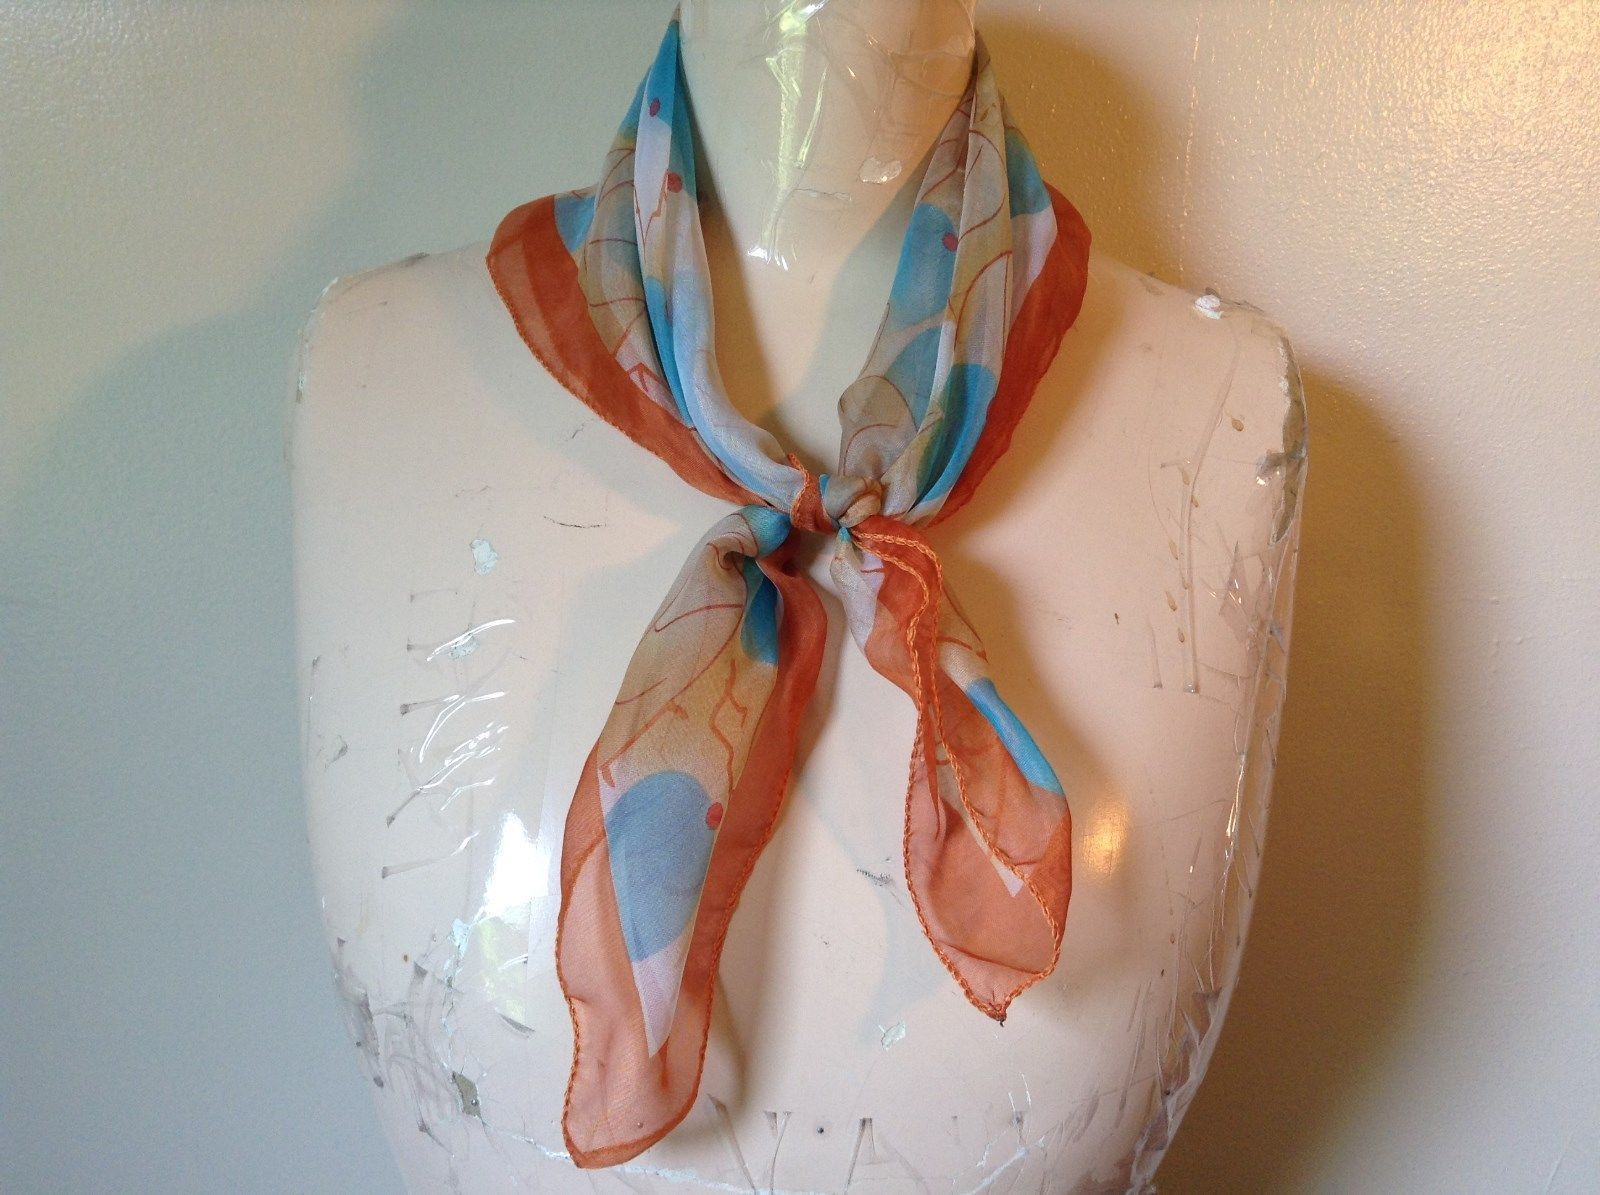 Orange Border Square Sheer Material Scarf Leaves Large Blueberries Branches